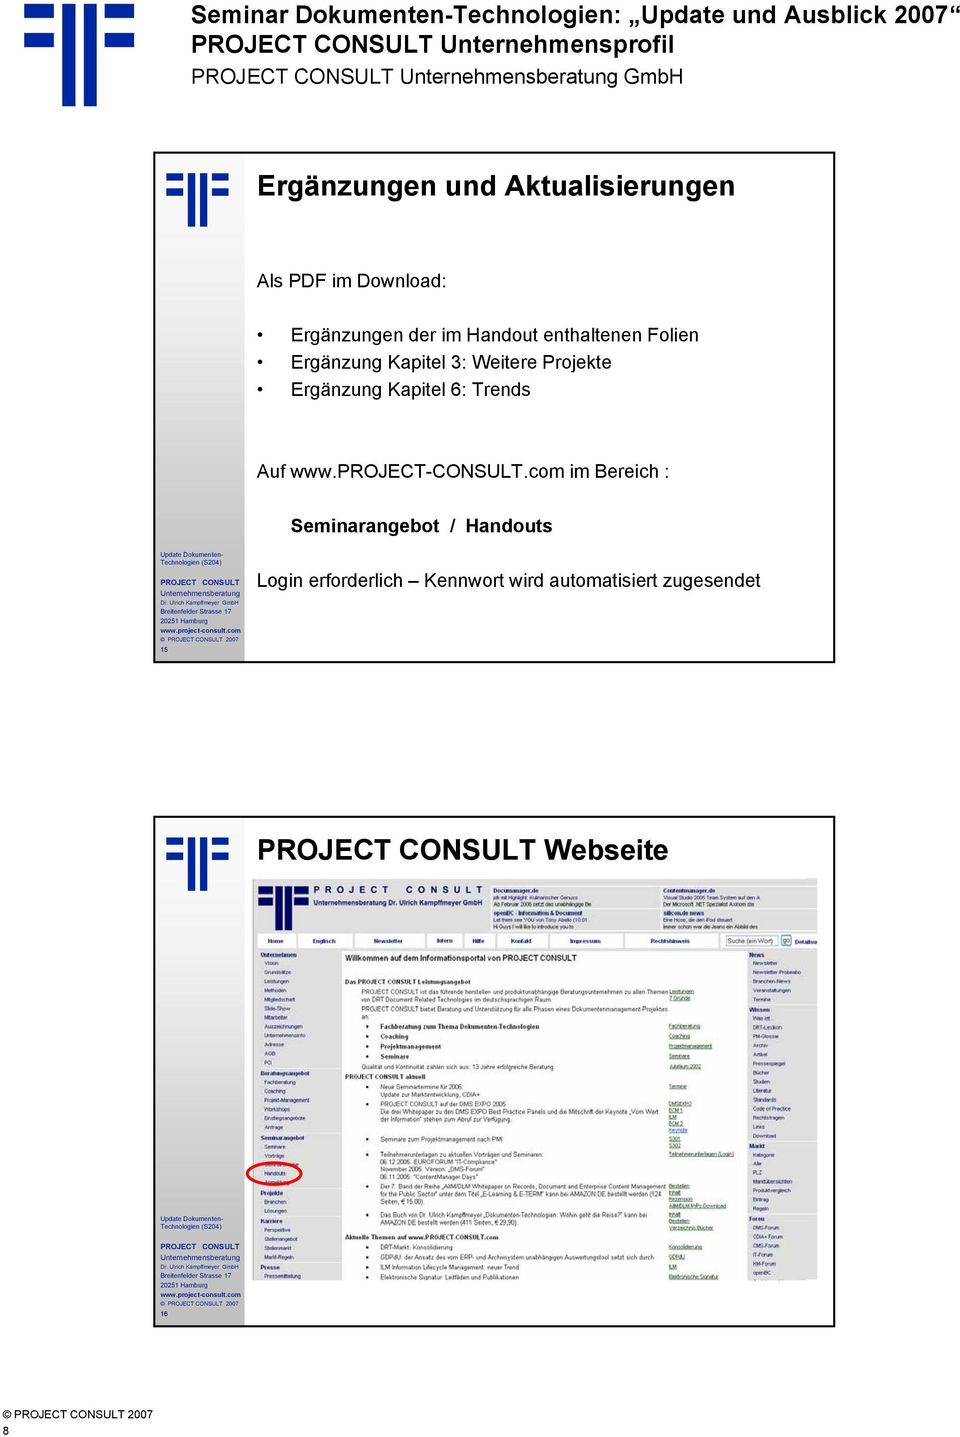 Auf www.project-consult.